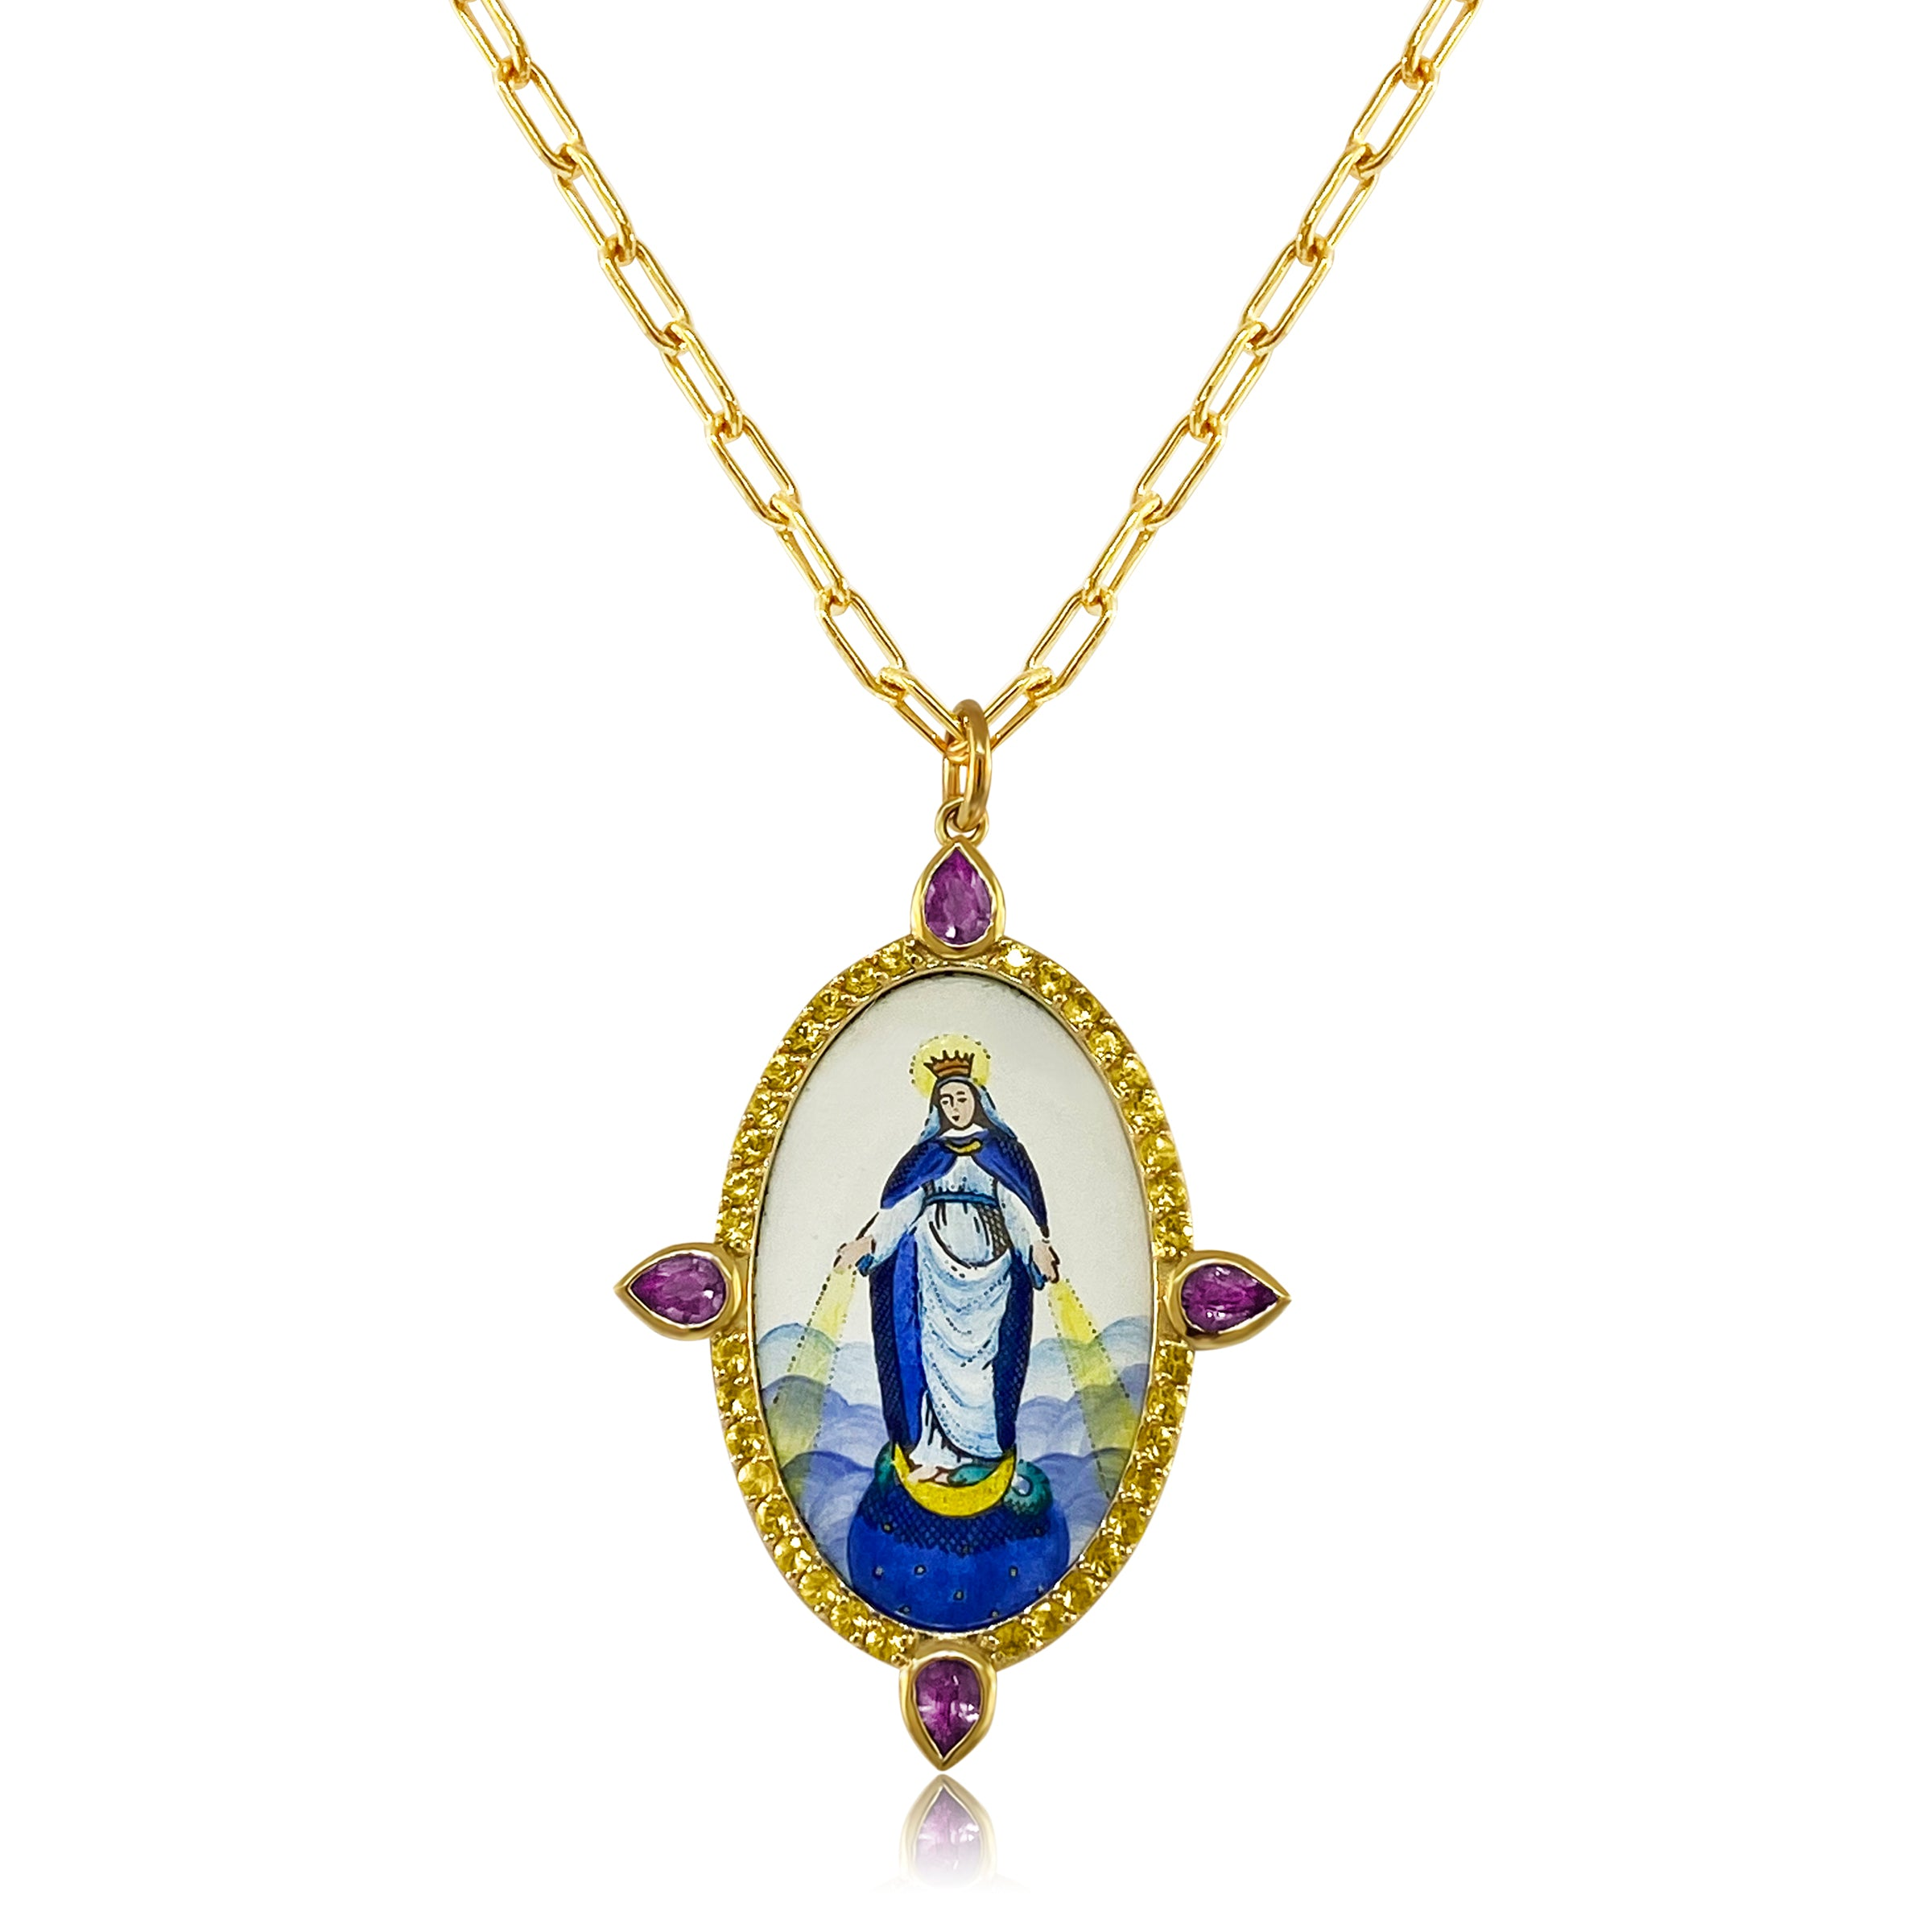 Our Lady of the Miraculous Pendant